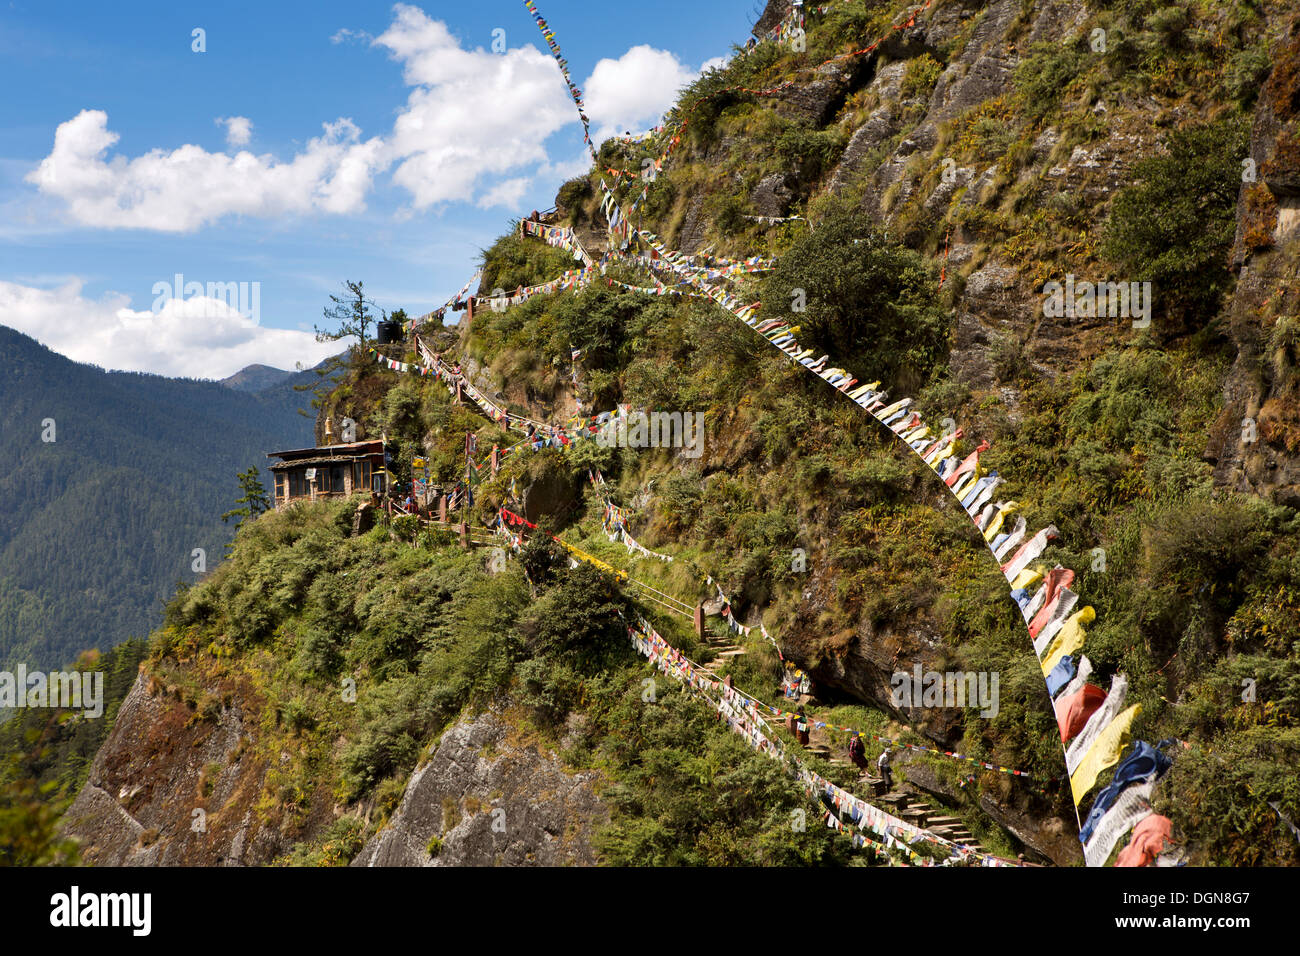 Bhutan, Paro valley, prayer flags above path to Taktsang Lhakang (Tiger's Nest) monastery - Stock Image